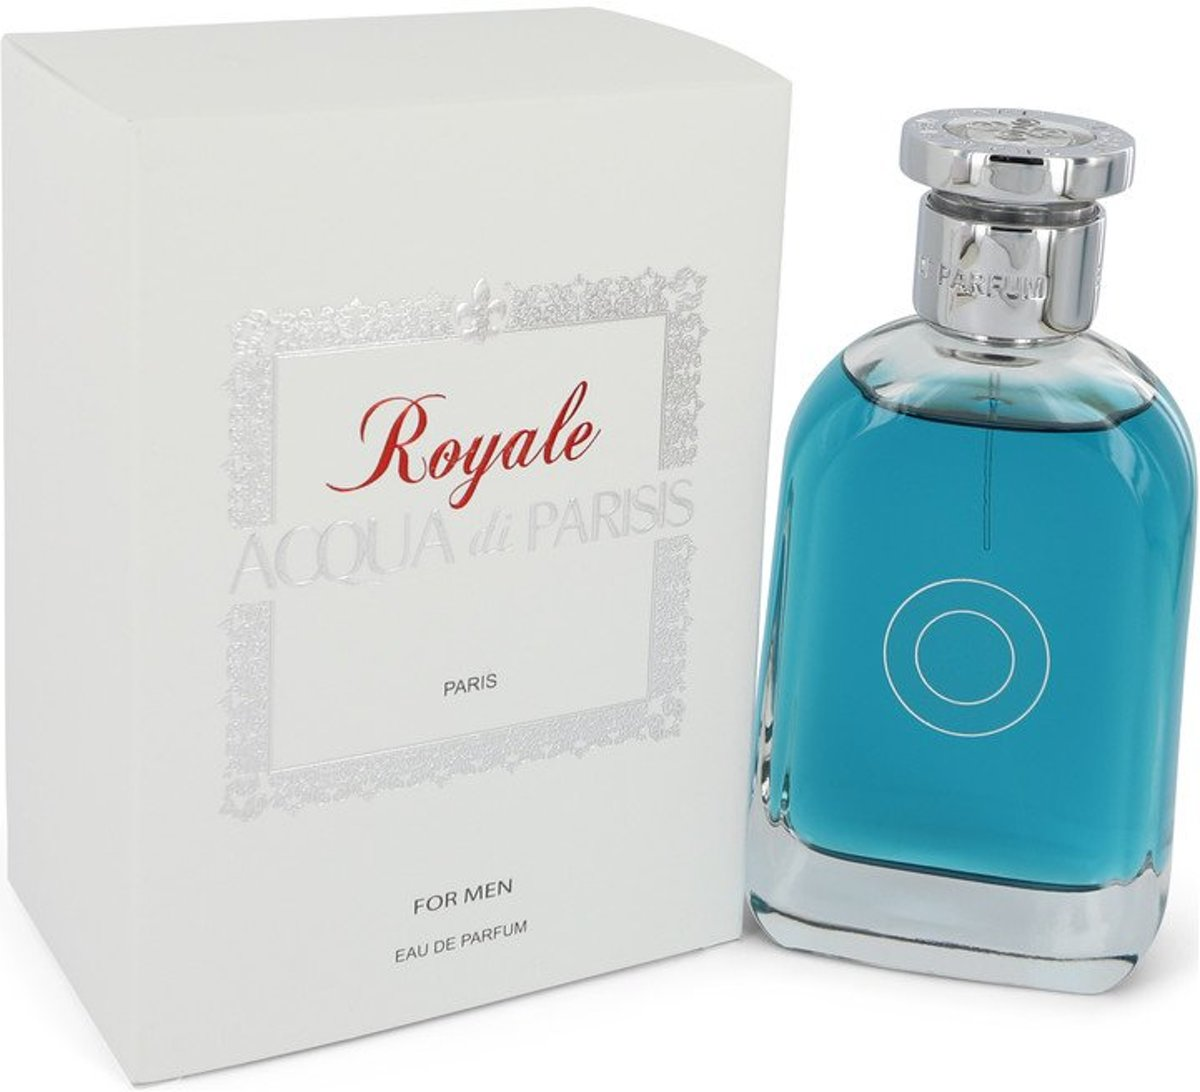 Acqua Di Parisis Royale - 100 ml Eau de parfum - by Reyane Tradition